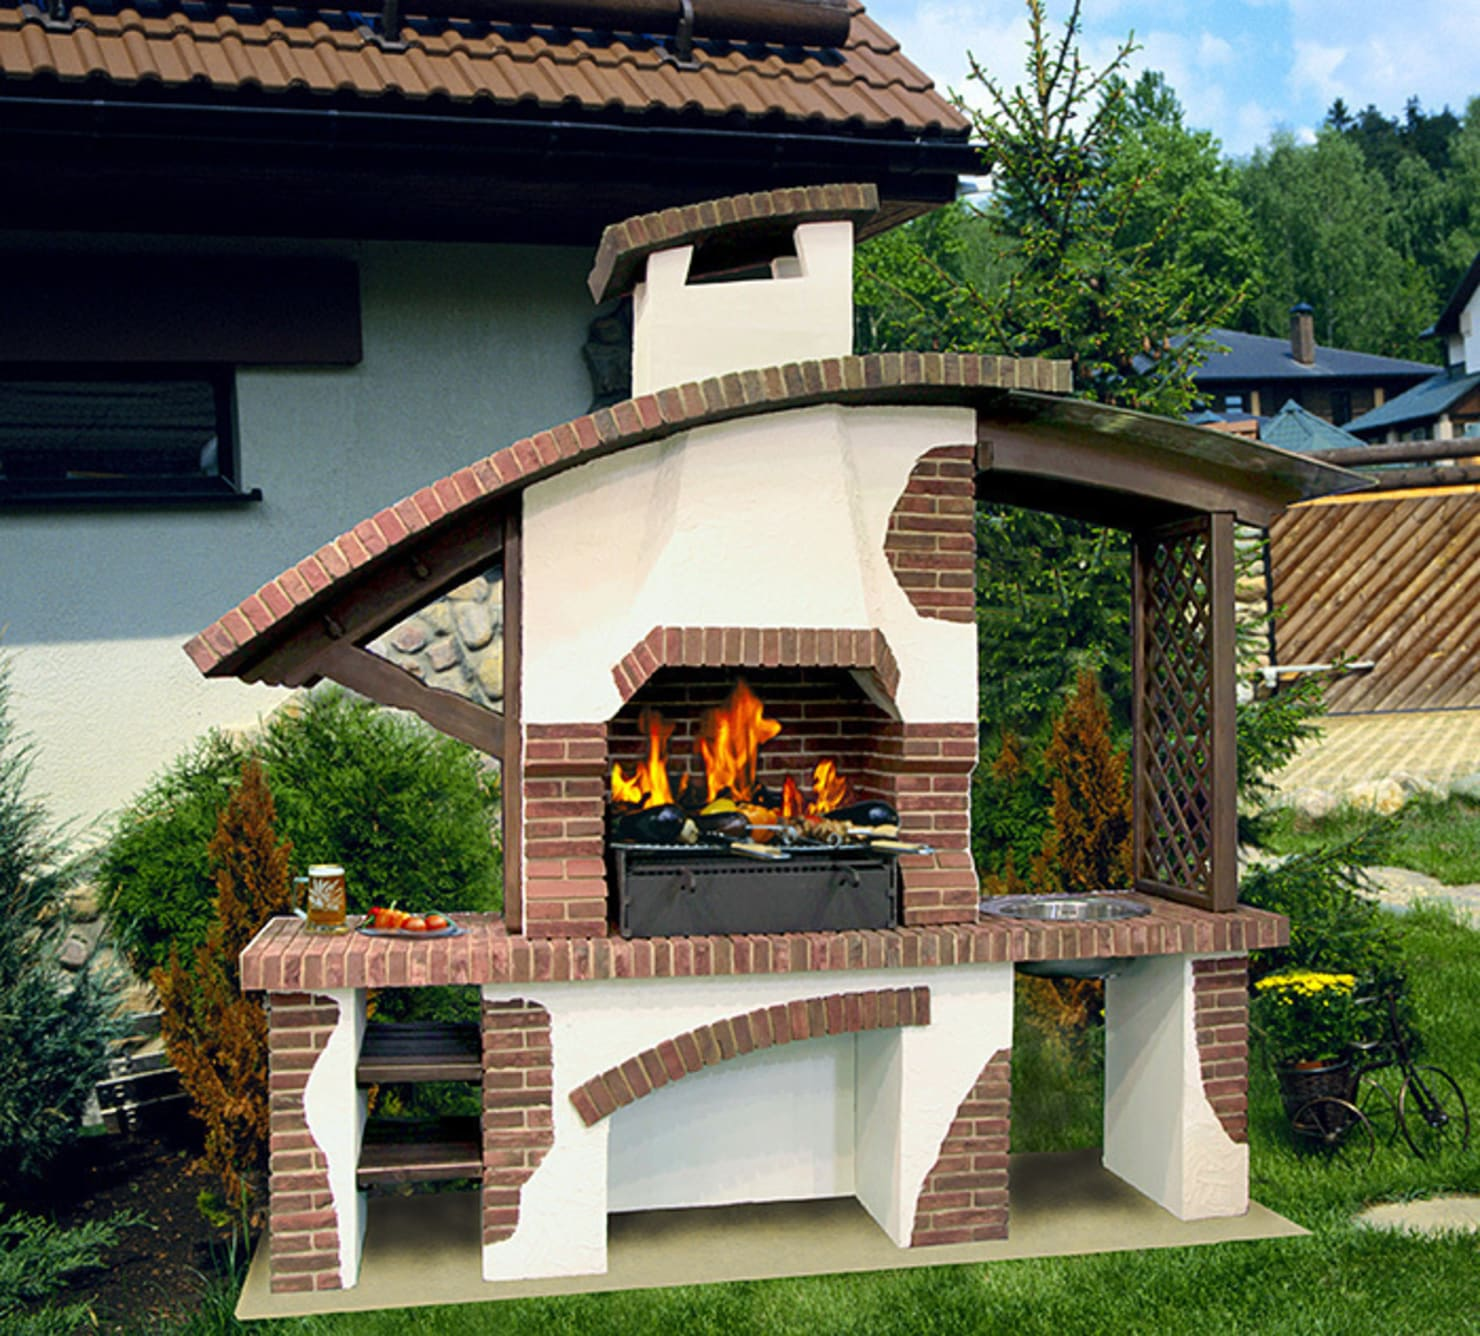 DIY: a 7-step guide to building a brick oven